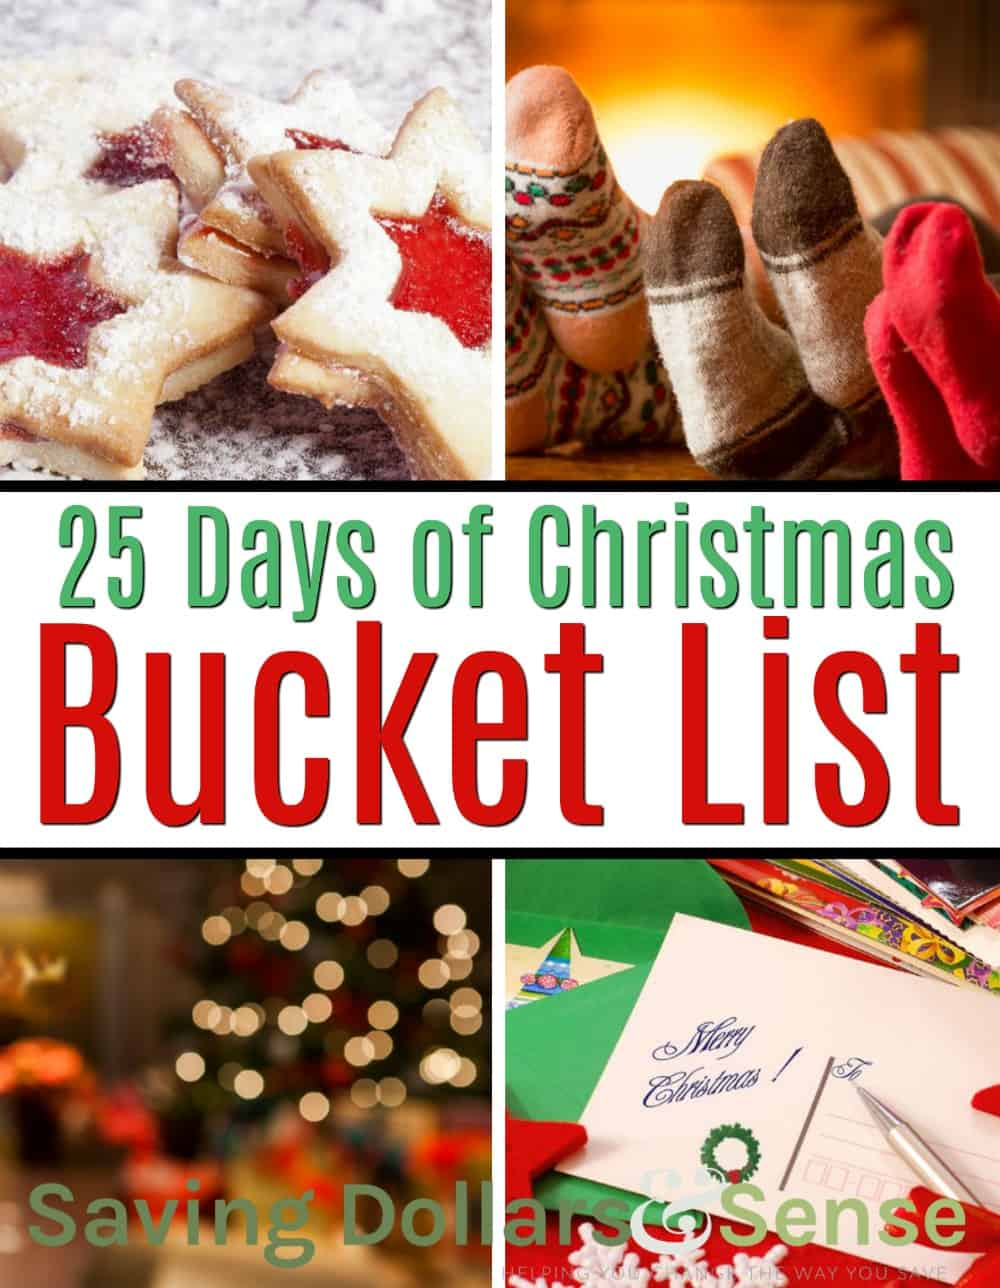 25 Days of Christmas Bucket List and family fun activities.